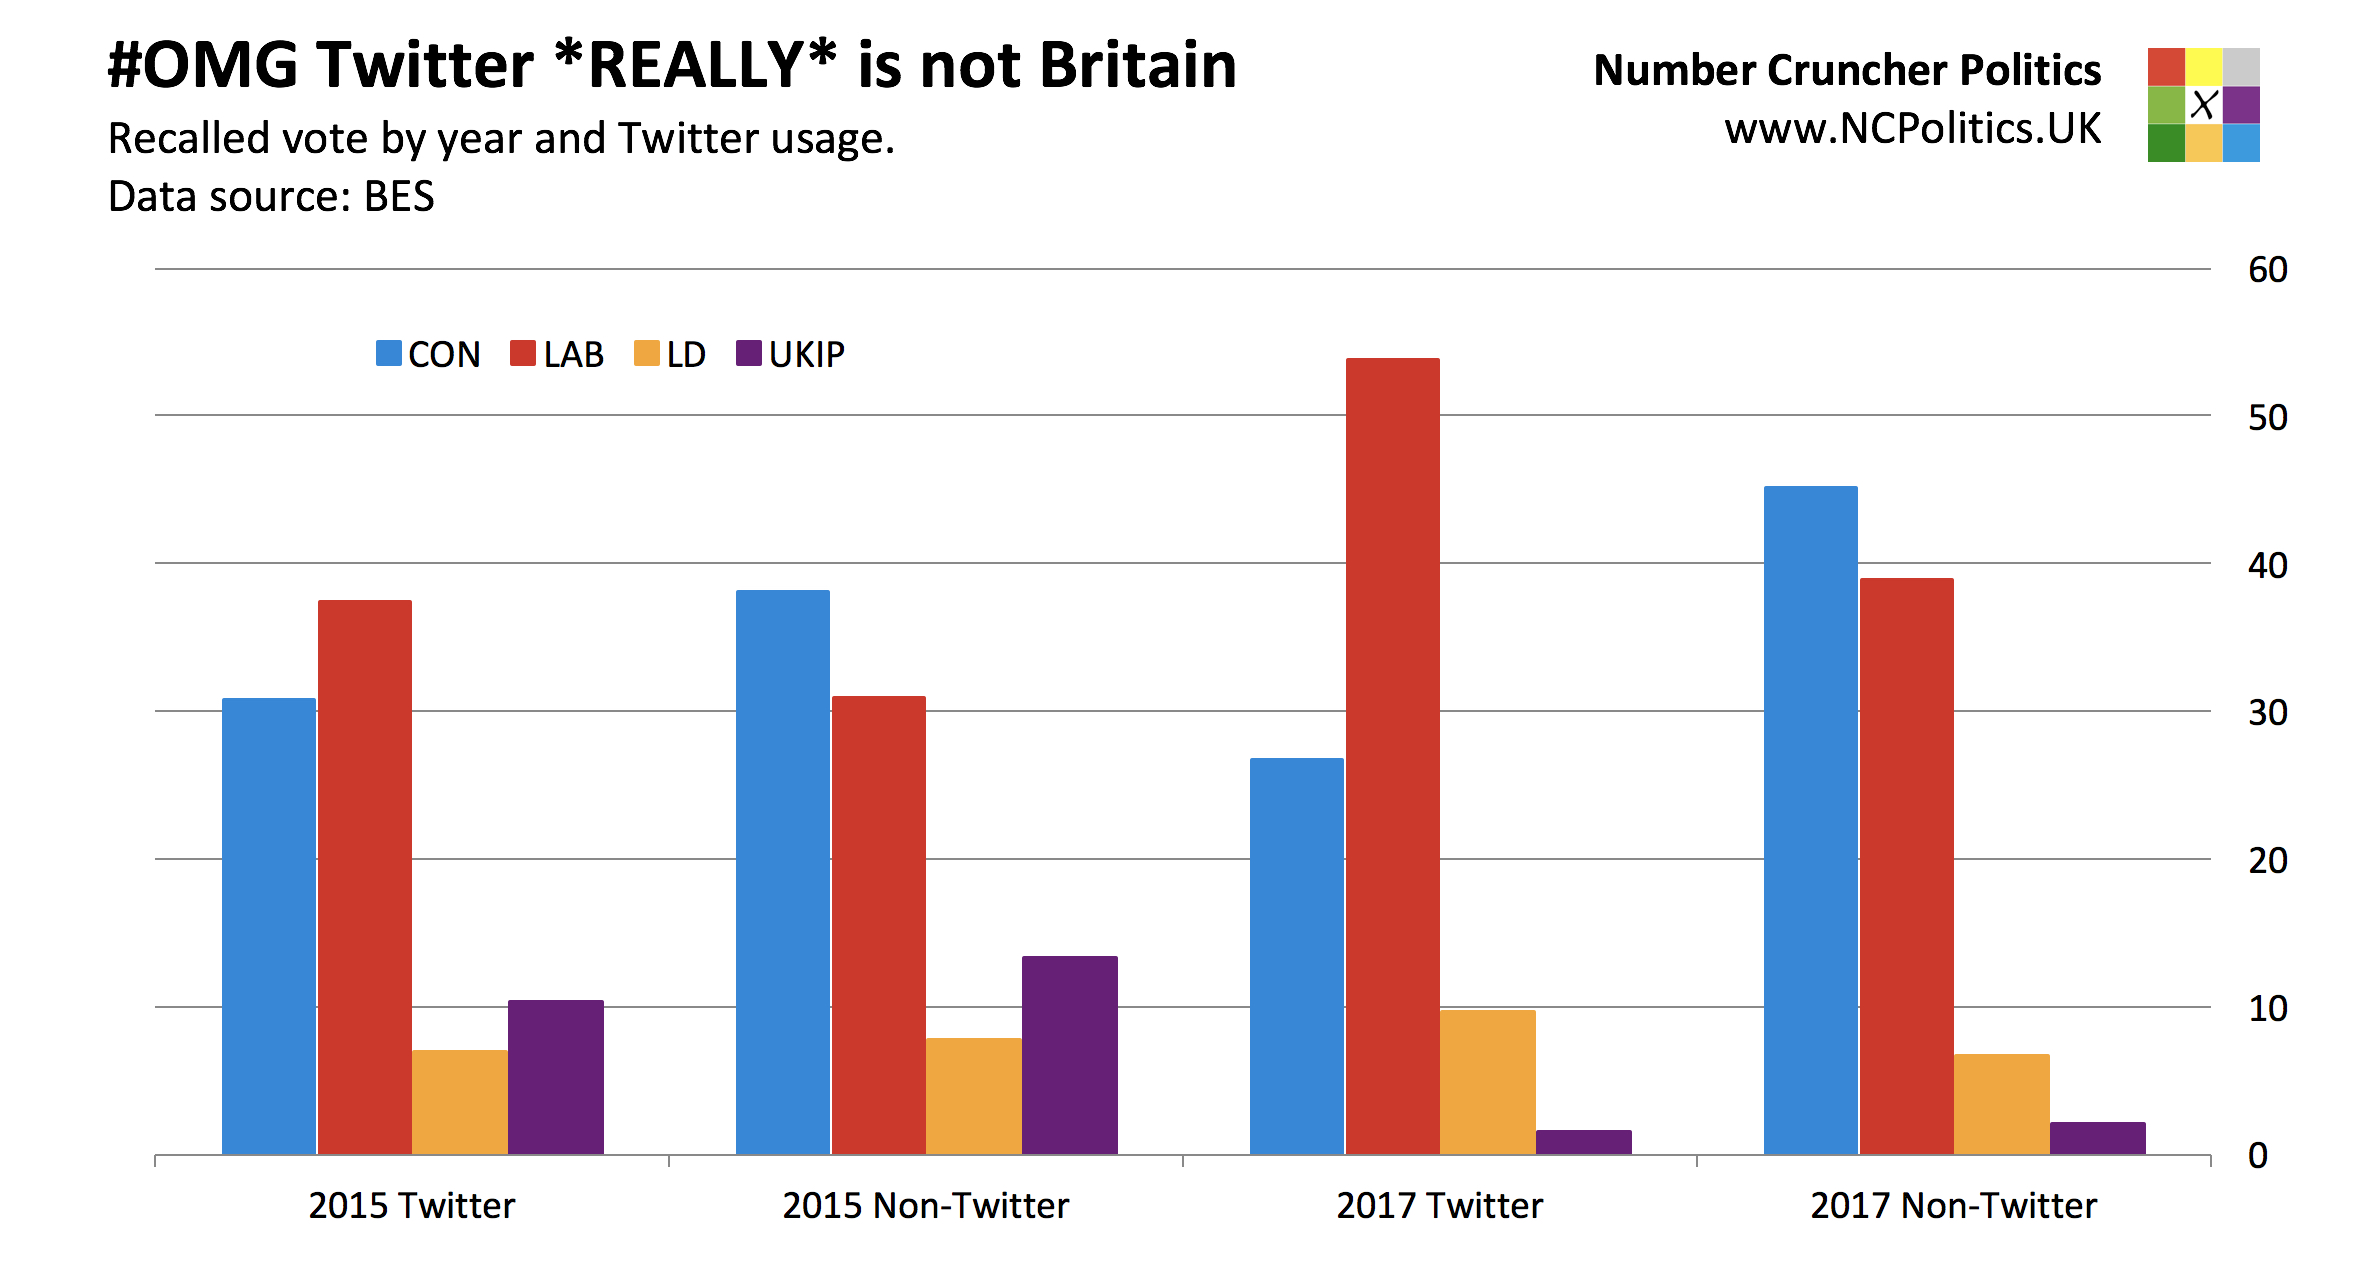 We knew social media wasn't representative, but these numbers are